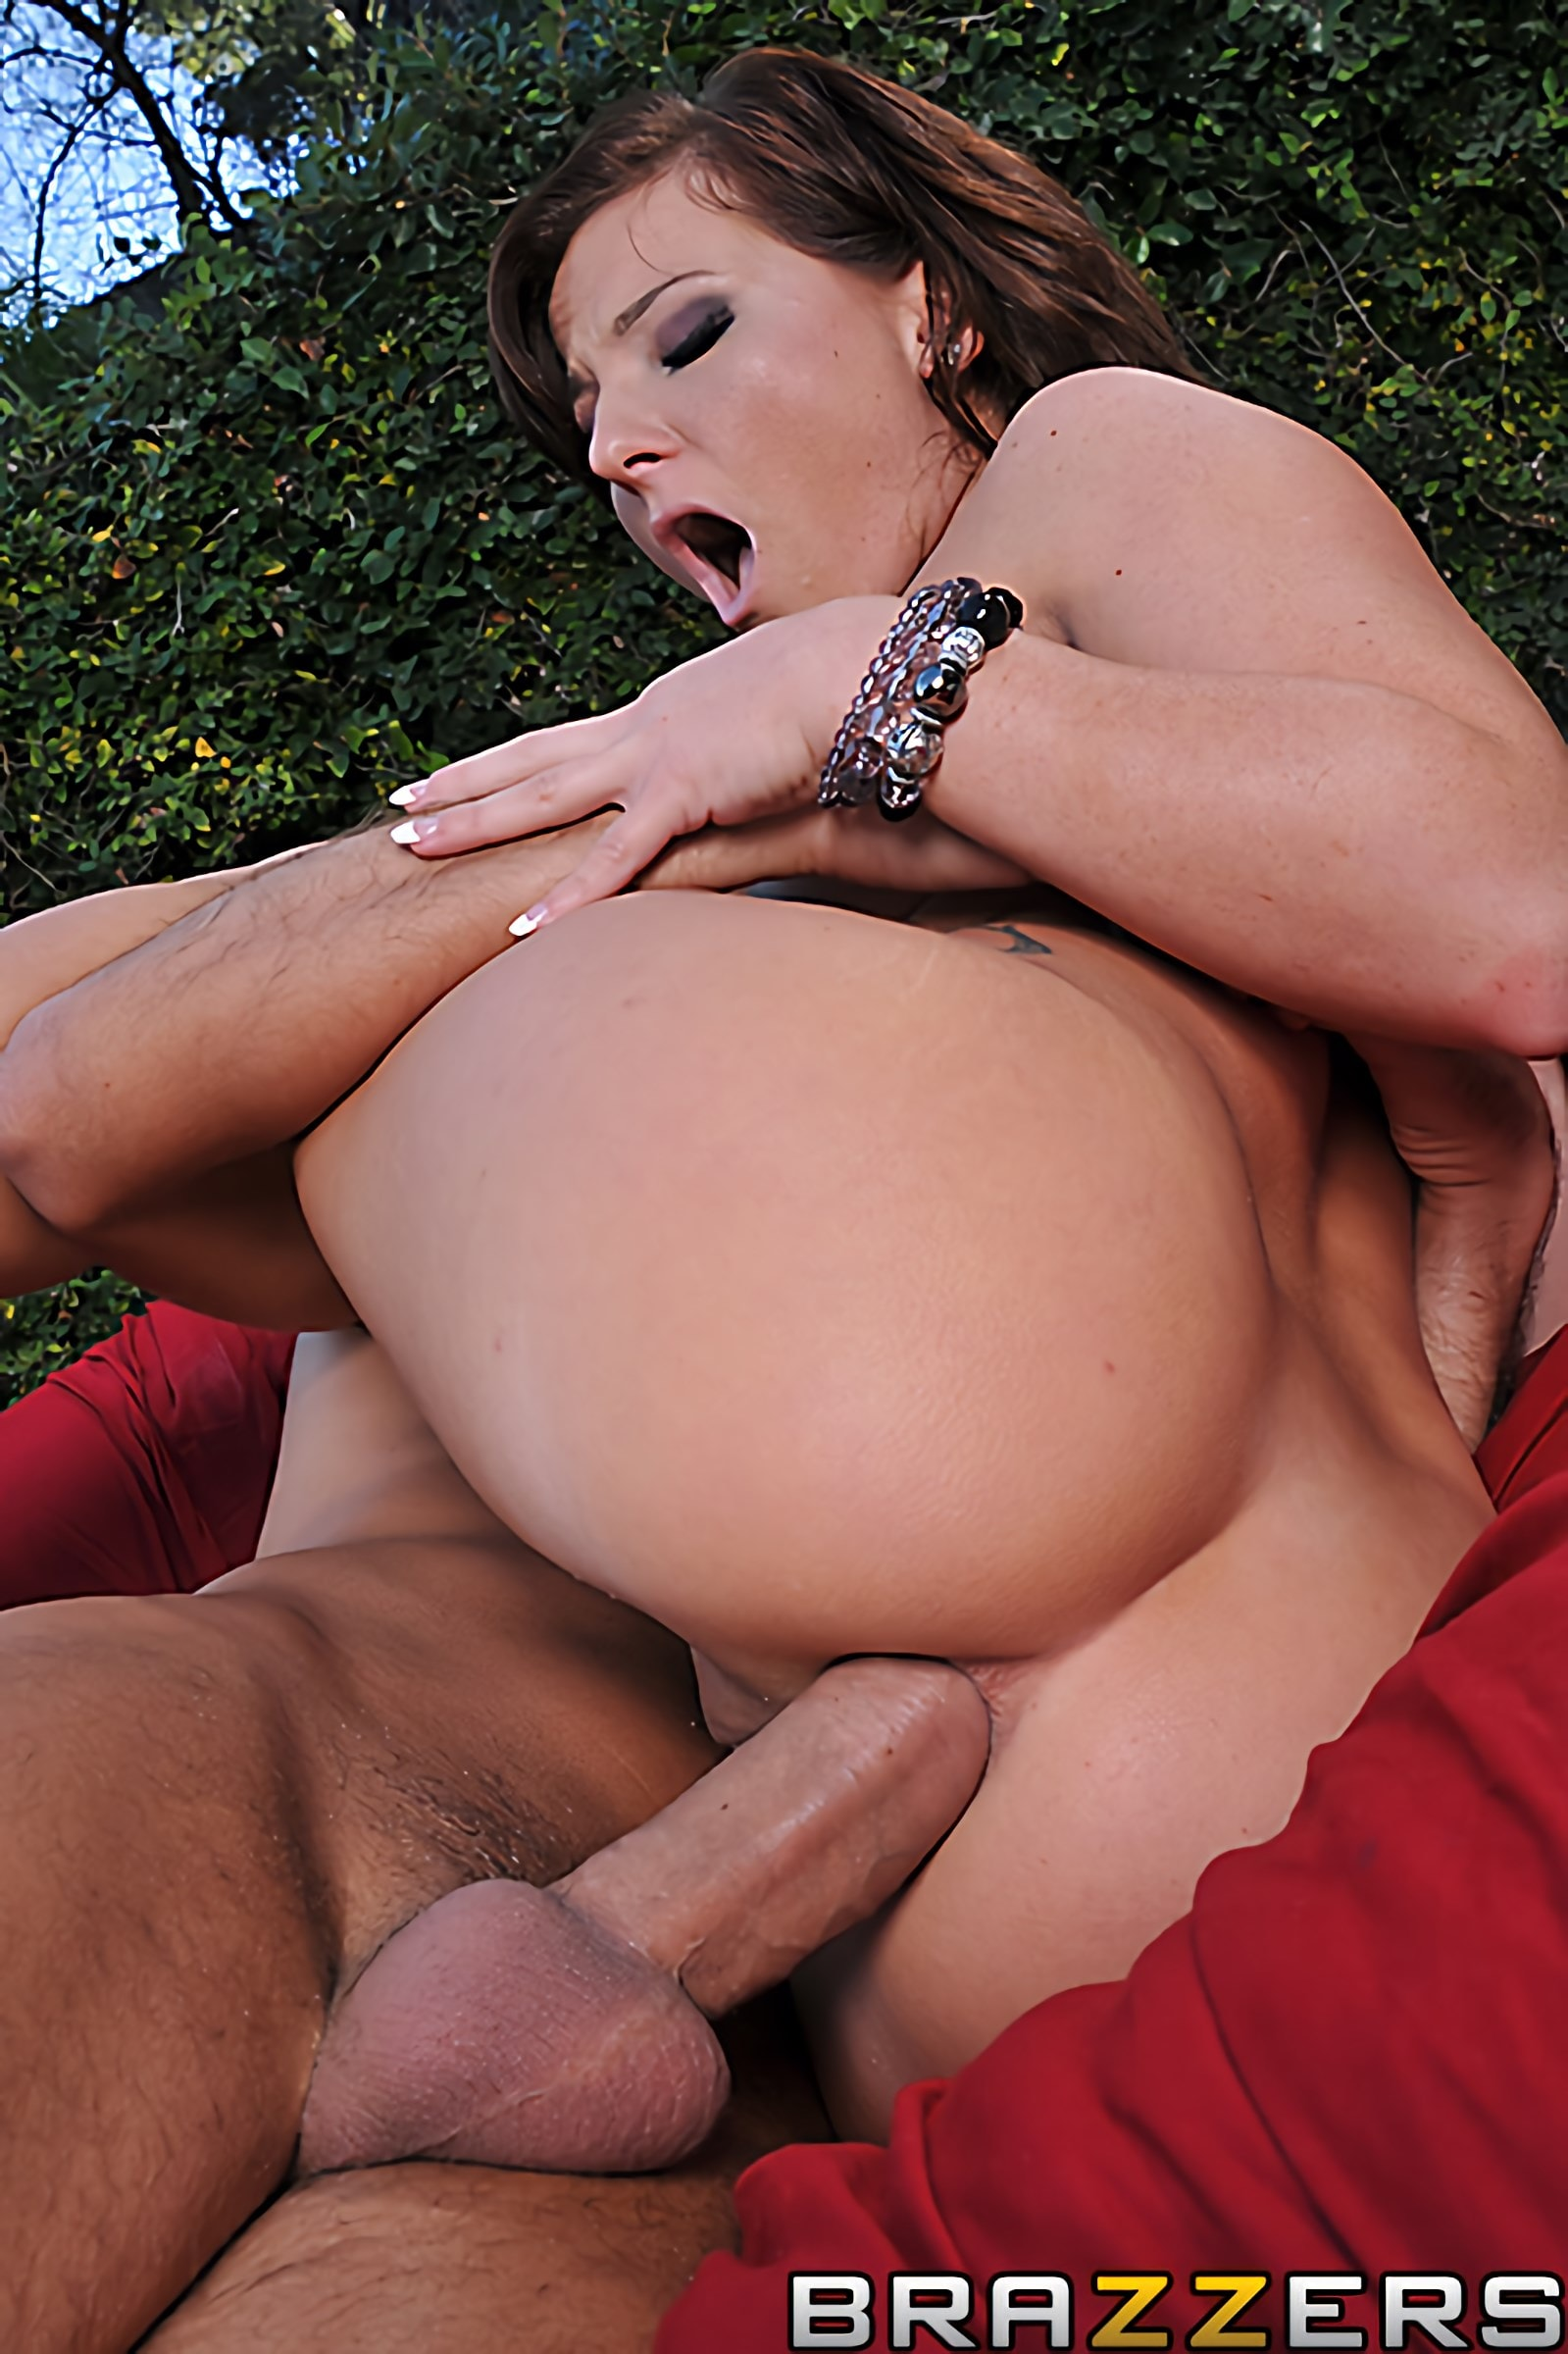 Brazzers 'Anal Lust' starring Casey Cumz (photo 14)